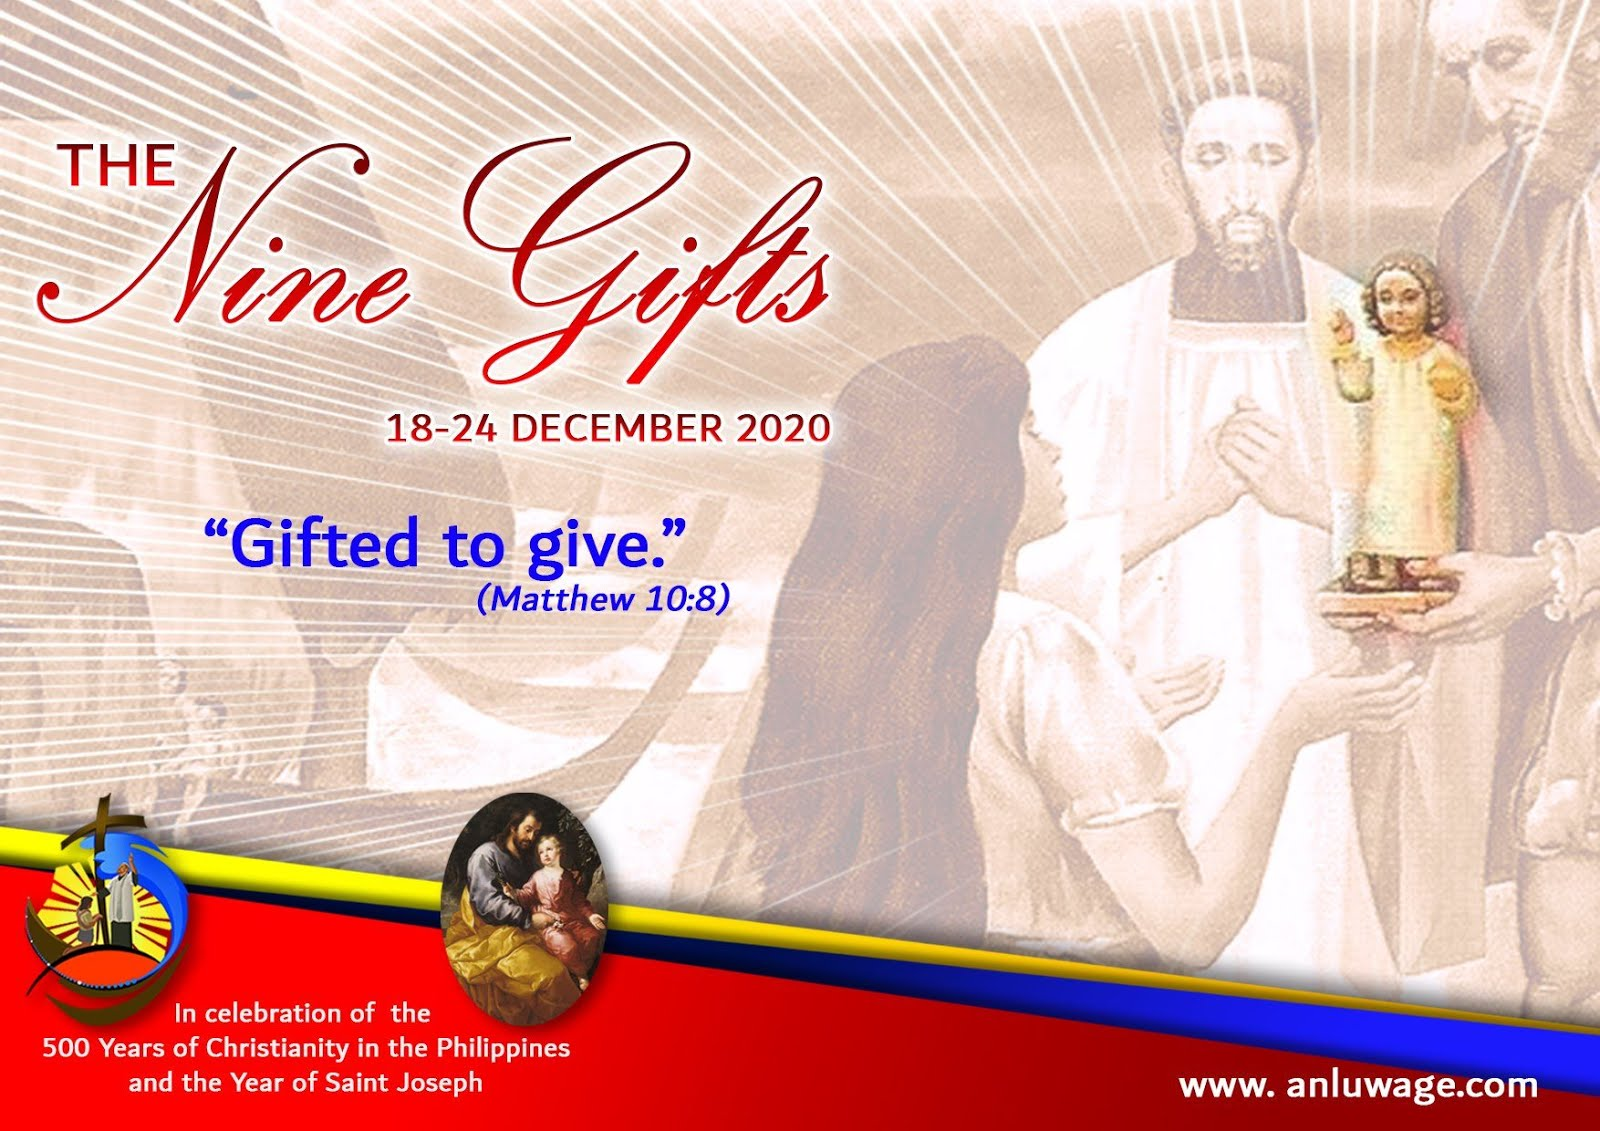 The Nine Gifts 2020